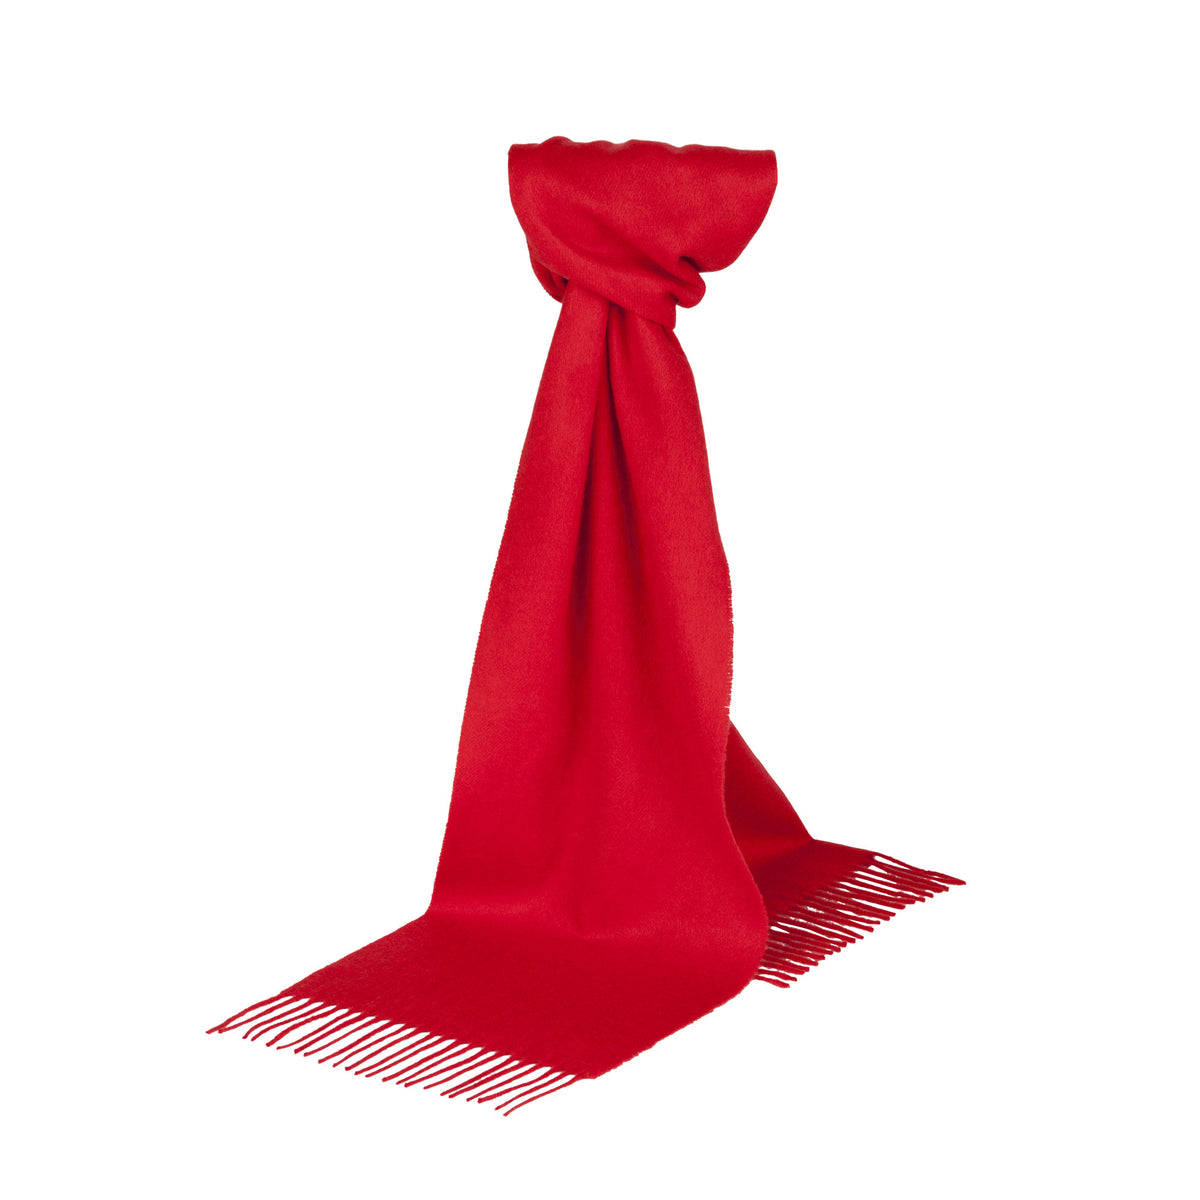 Johnsons of Elgin | Red Cashmere Scarf | buy at The Cashmere Choice | London